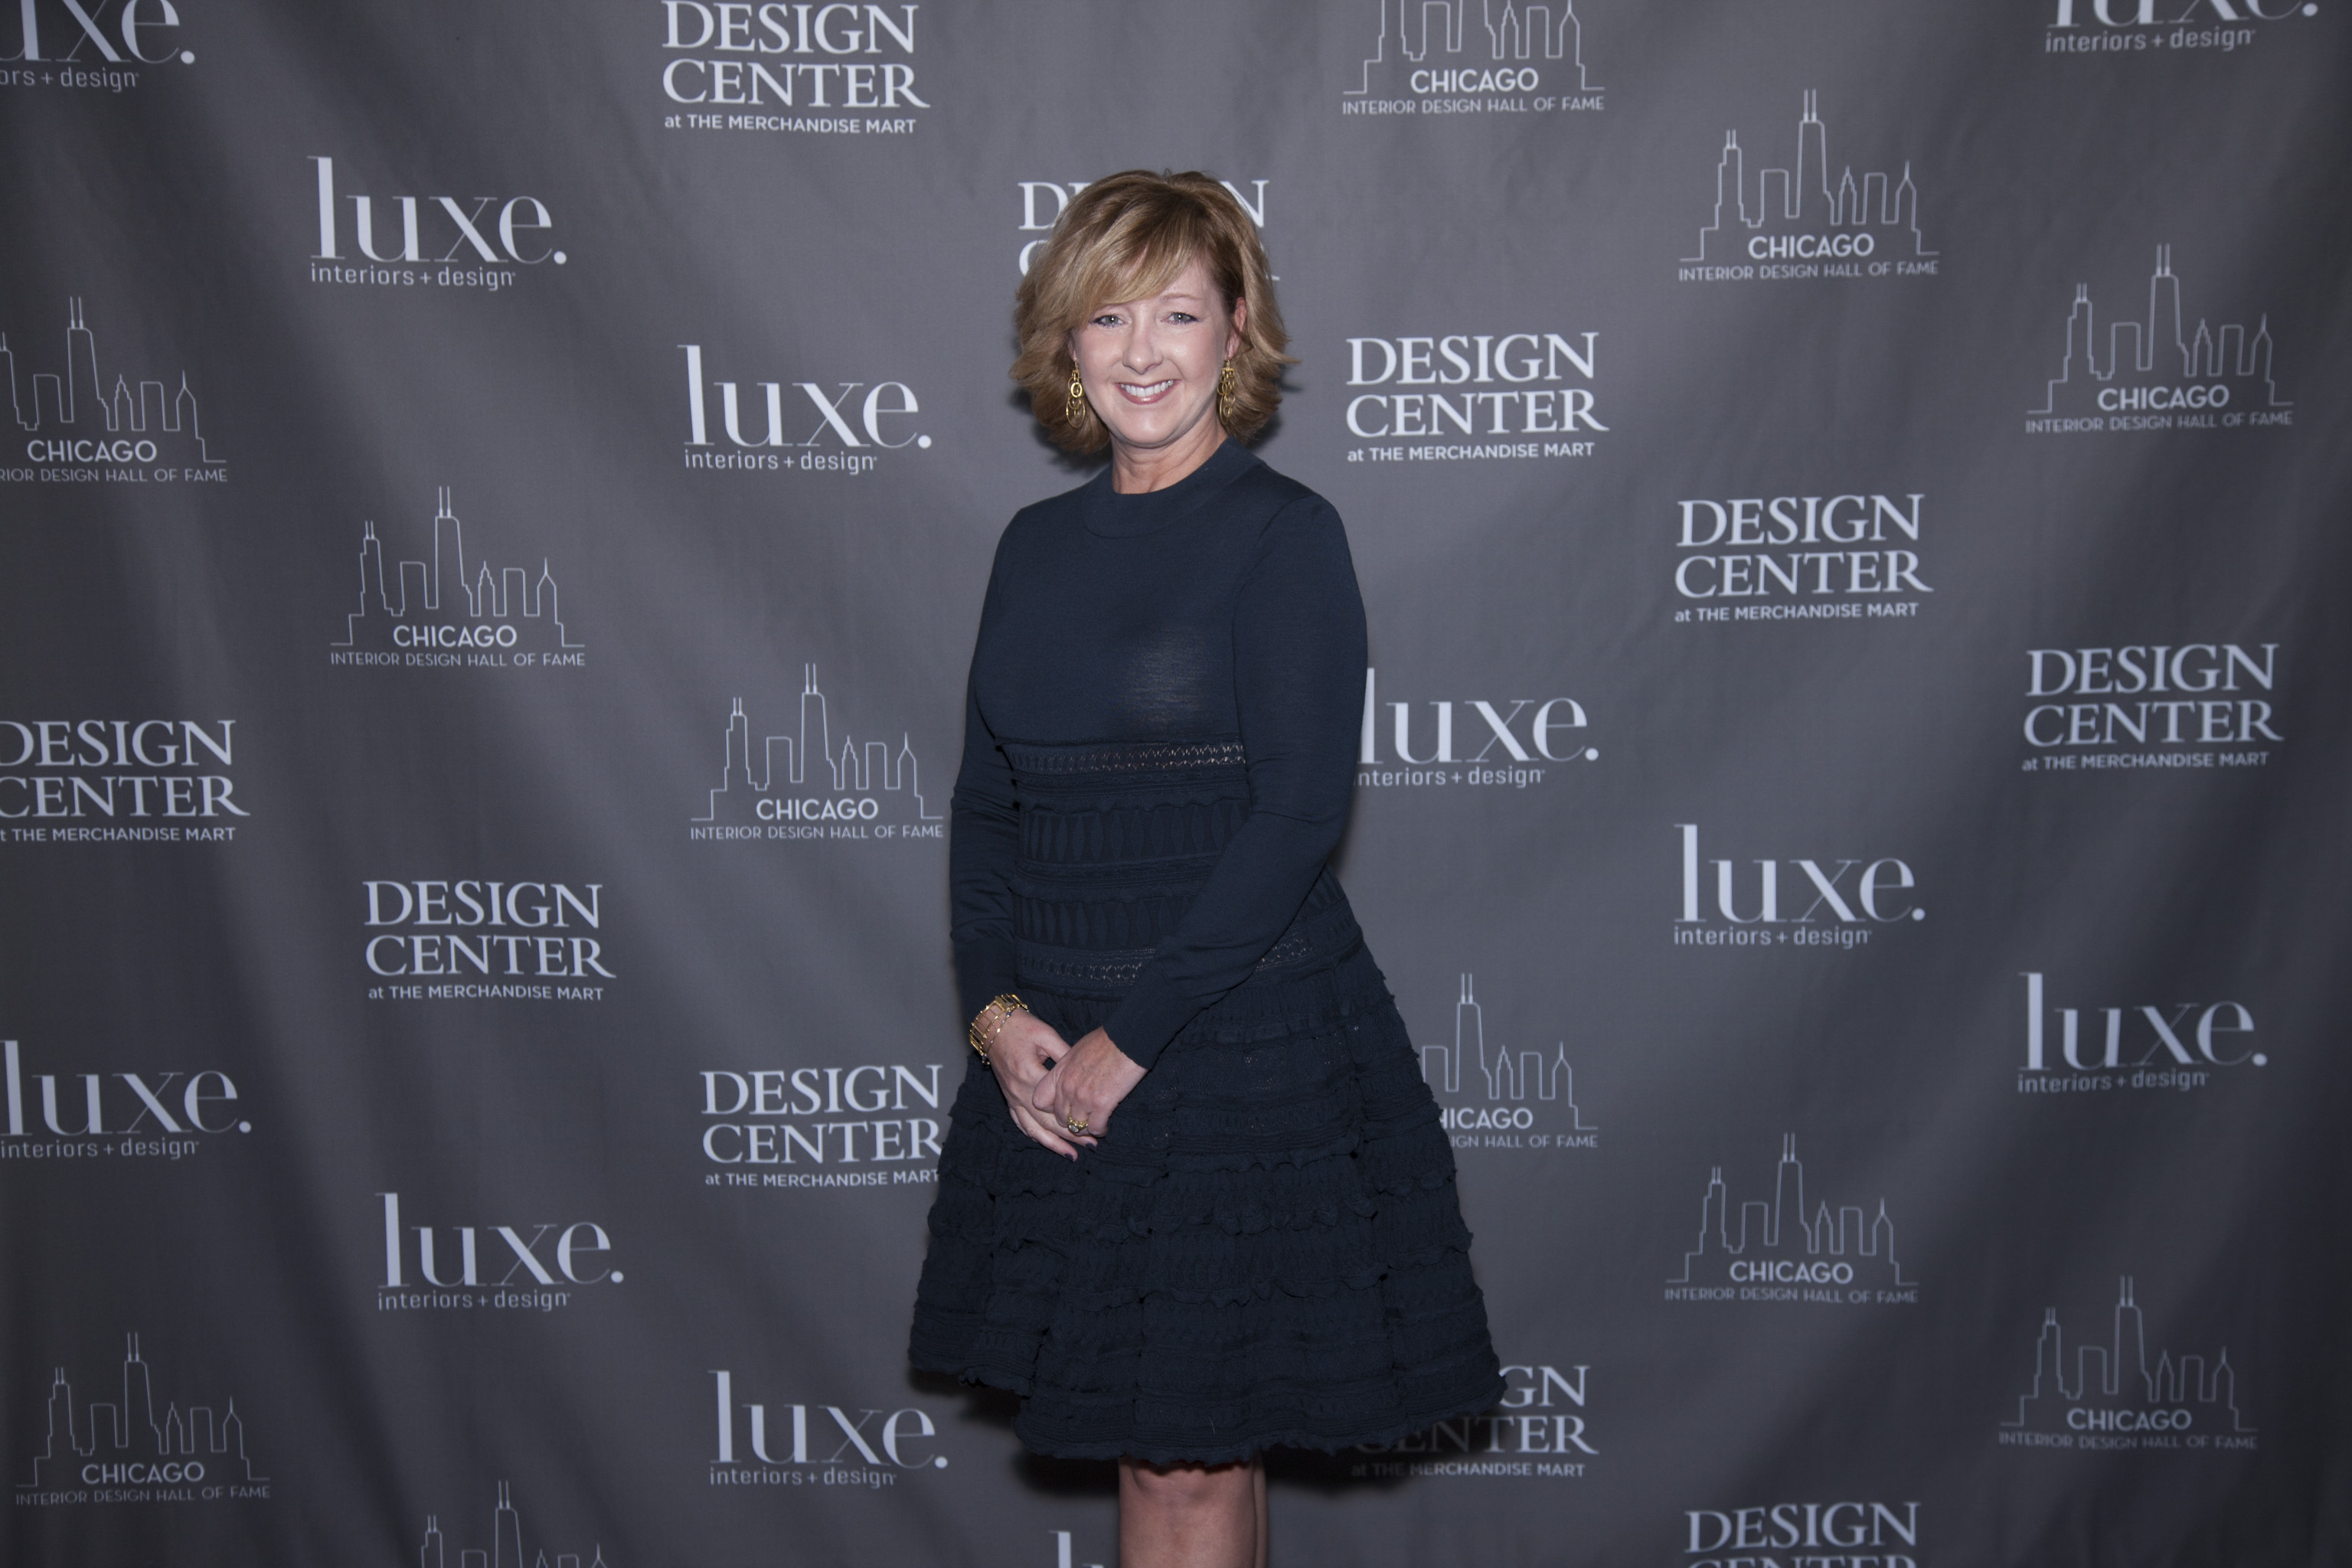 Luxe honors Tracy Hickman at Interior Design Hall of Fame